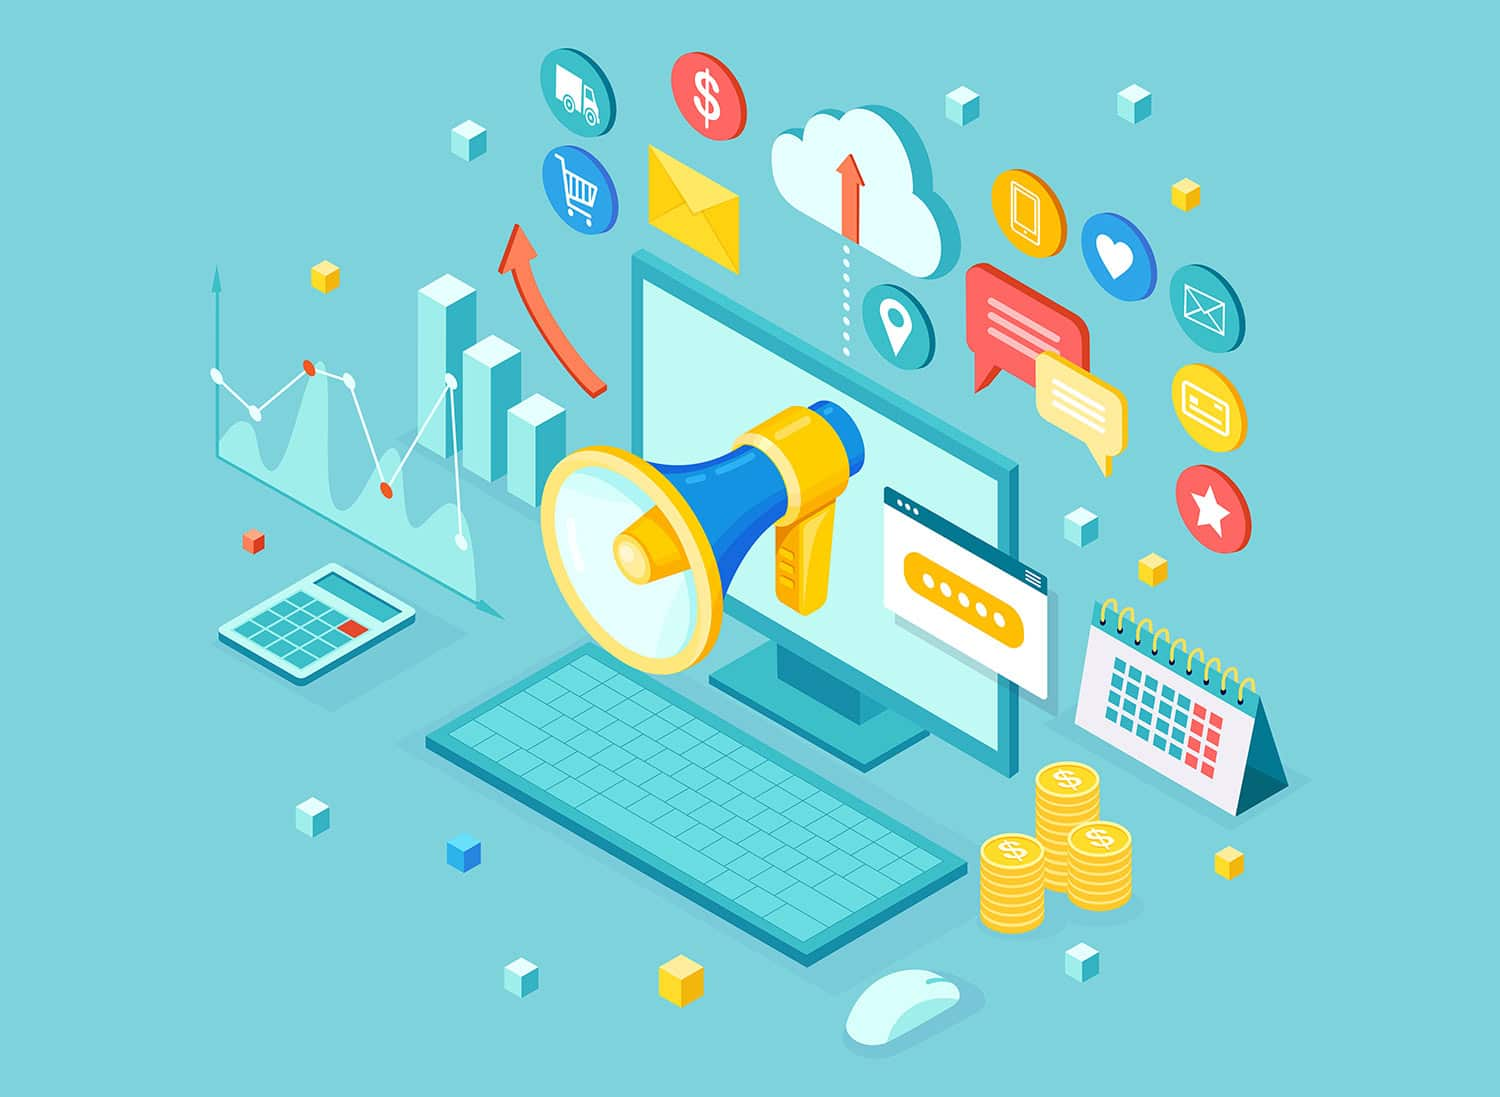 9 Digital marketing trends to watch for